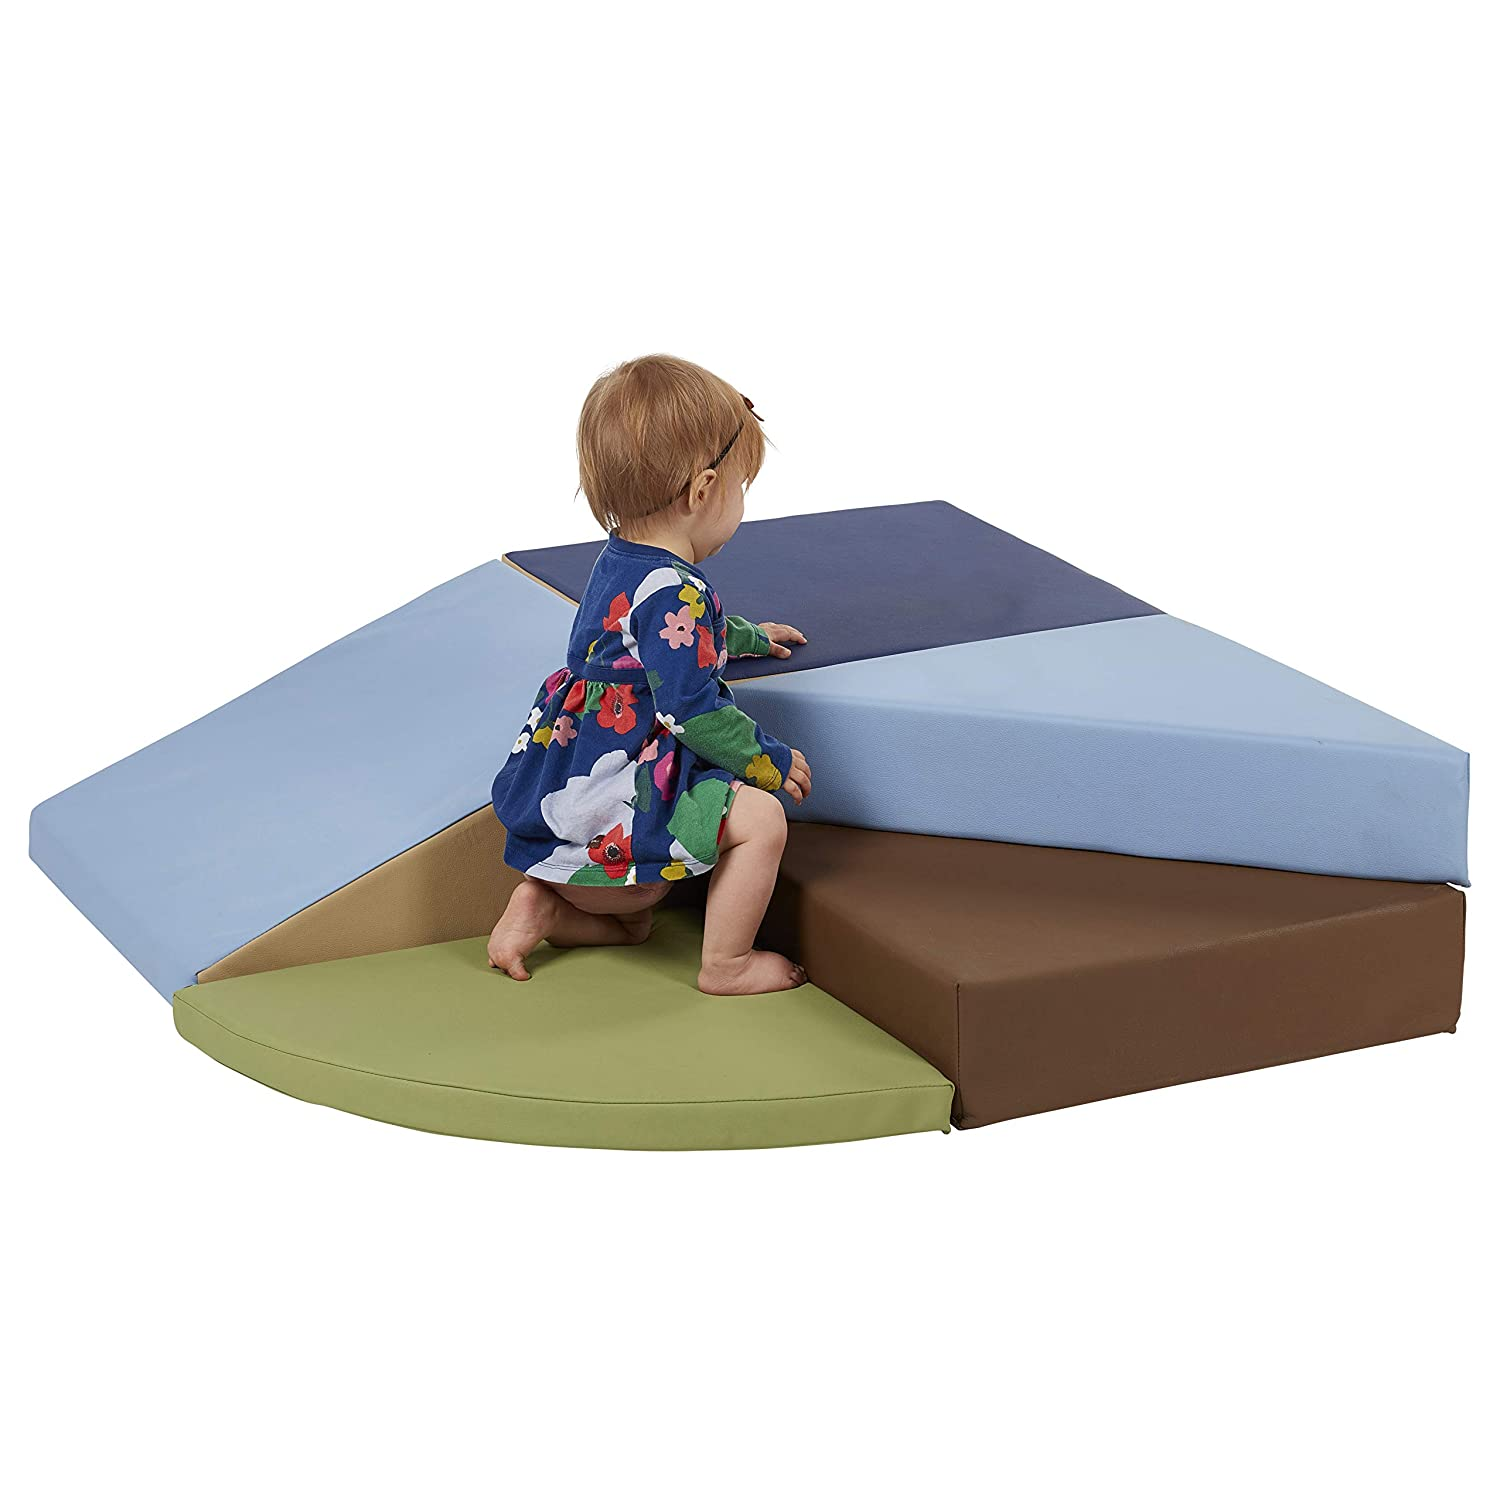 ECR4Kids SoftZone Tiny Twisting Foam Corner Climber Soft Foam Play Set Indoor Active Play Structure for Toddlers and Kids Contemporary ELR-12669F-CT